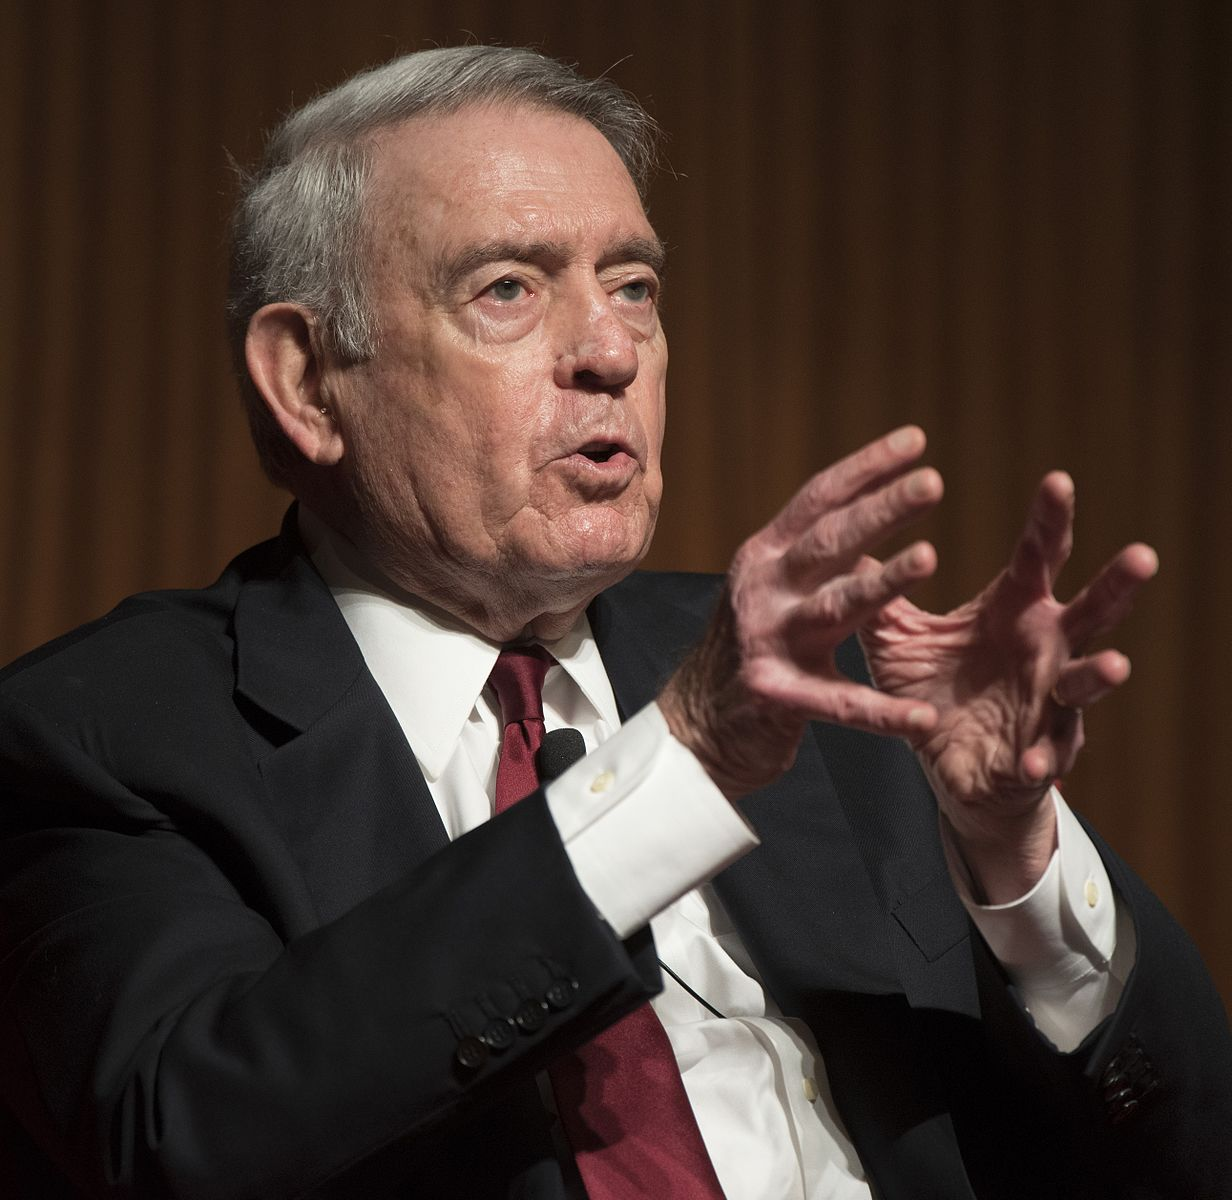 Dan Rather, Xinhua, AI, Artificial Intelligence, TV News